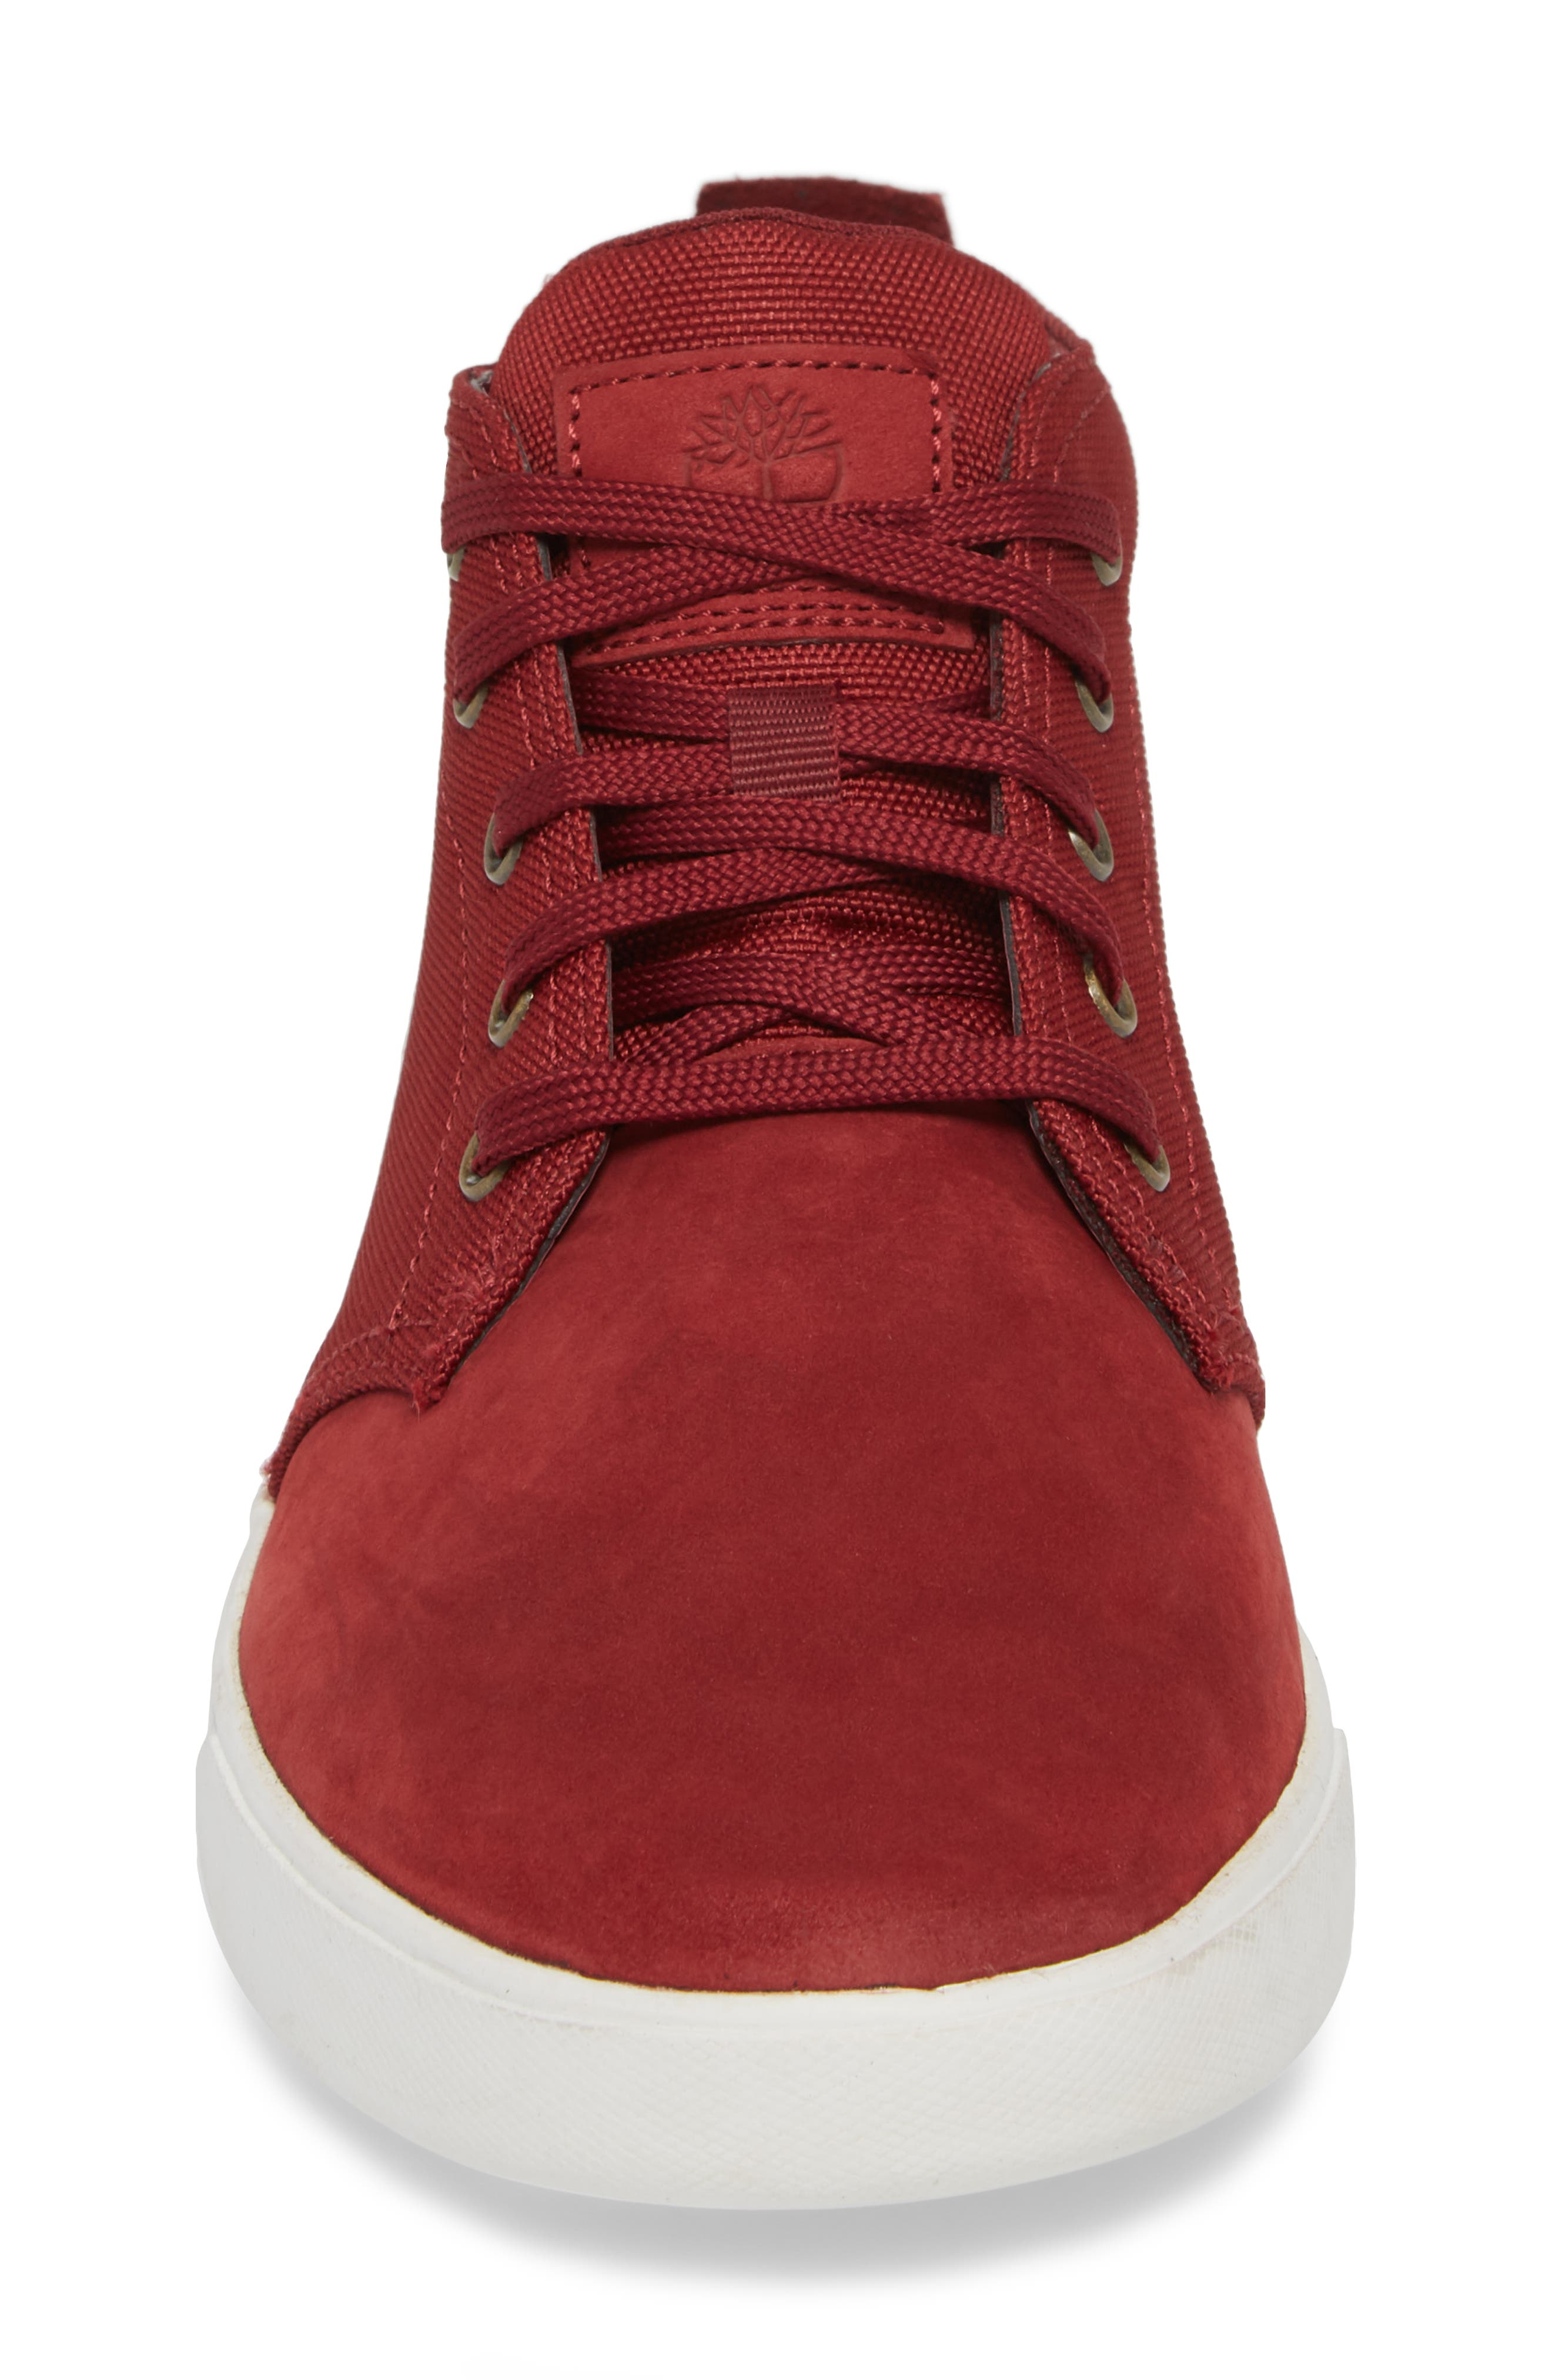 Earthkeepers<sup>™</sup> 'Groveton' Chukka Sneaker,                             Alternate thumbnail 4, color,                             Pomegranate Nubuck